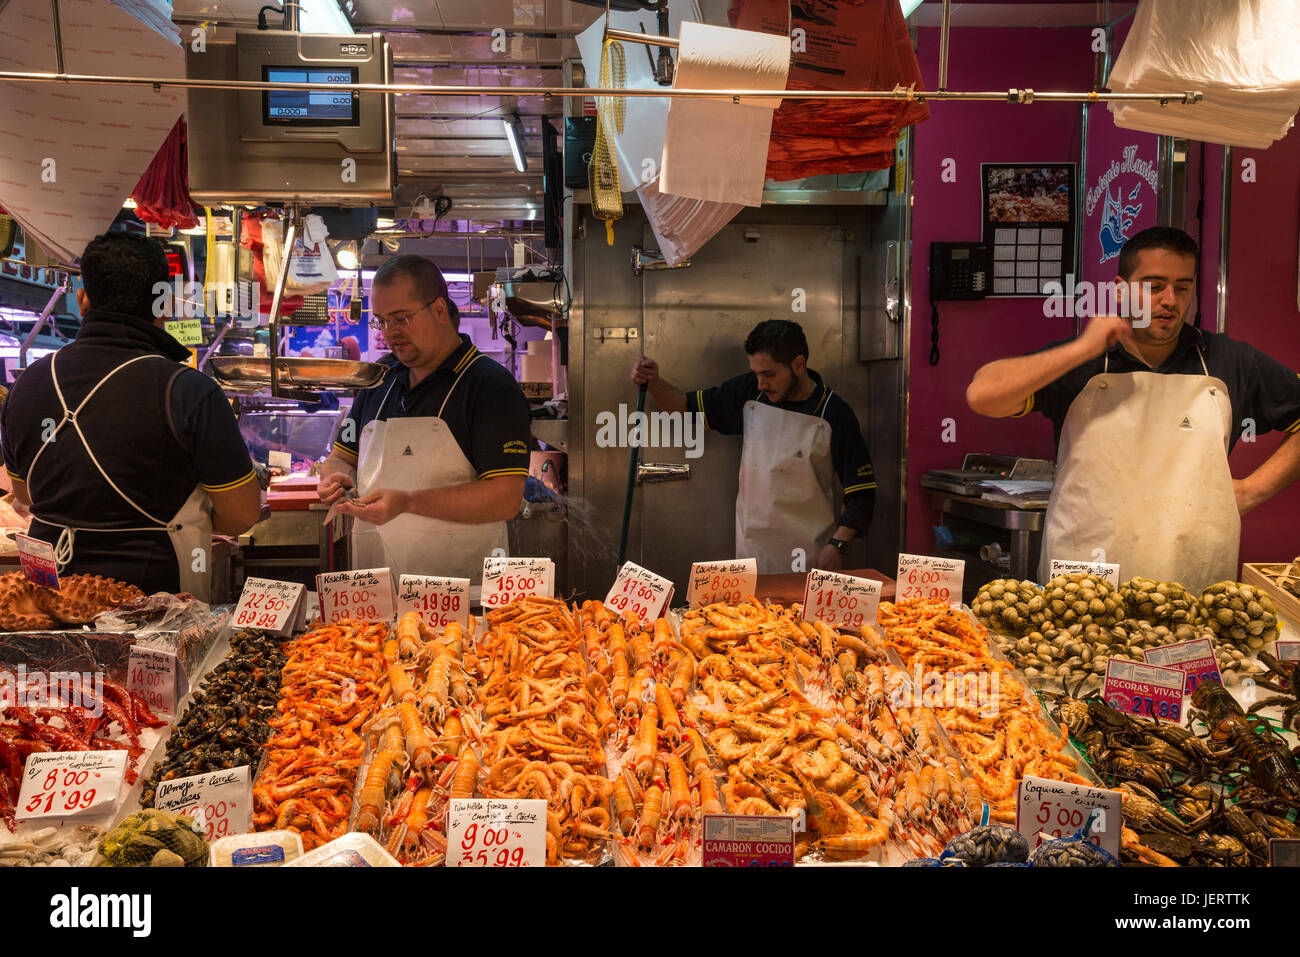 Seafood from all over Spain on sale in the Mercardo de Maravillas, one of the largest food markets in Europe.  Cuatro - Stock Image